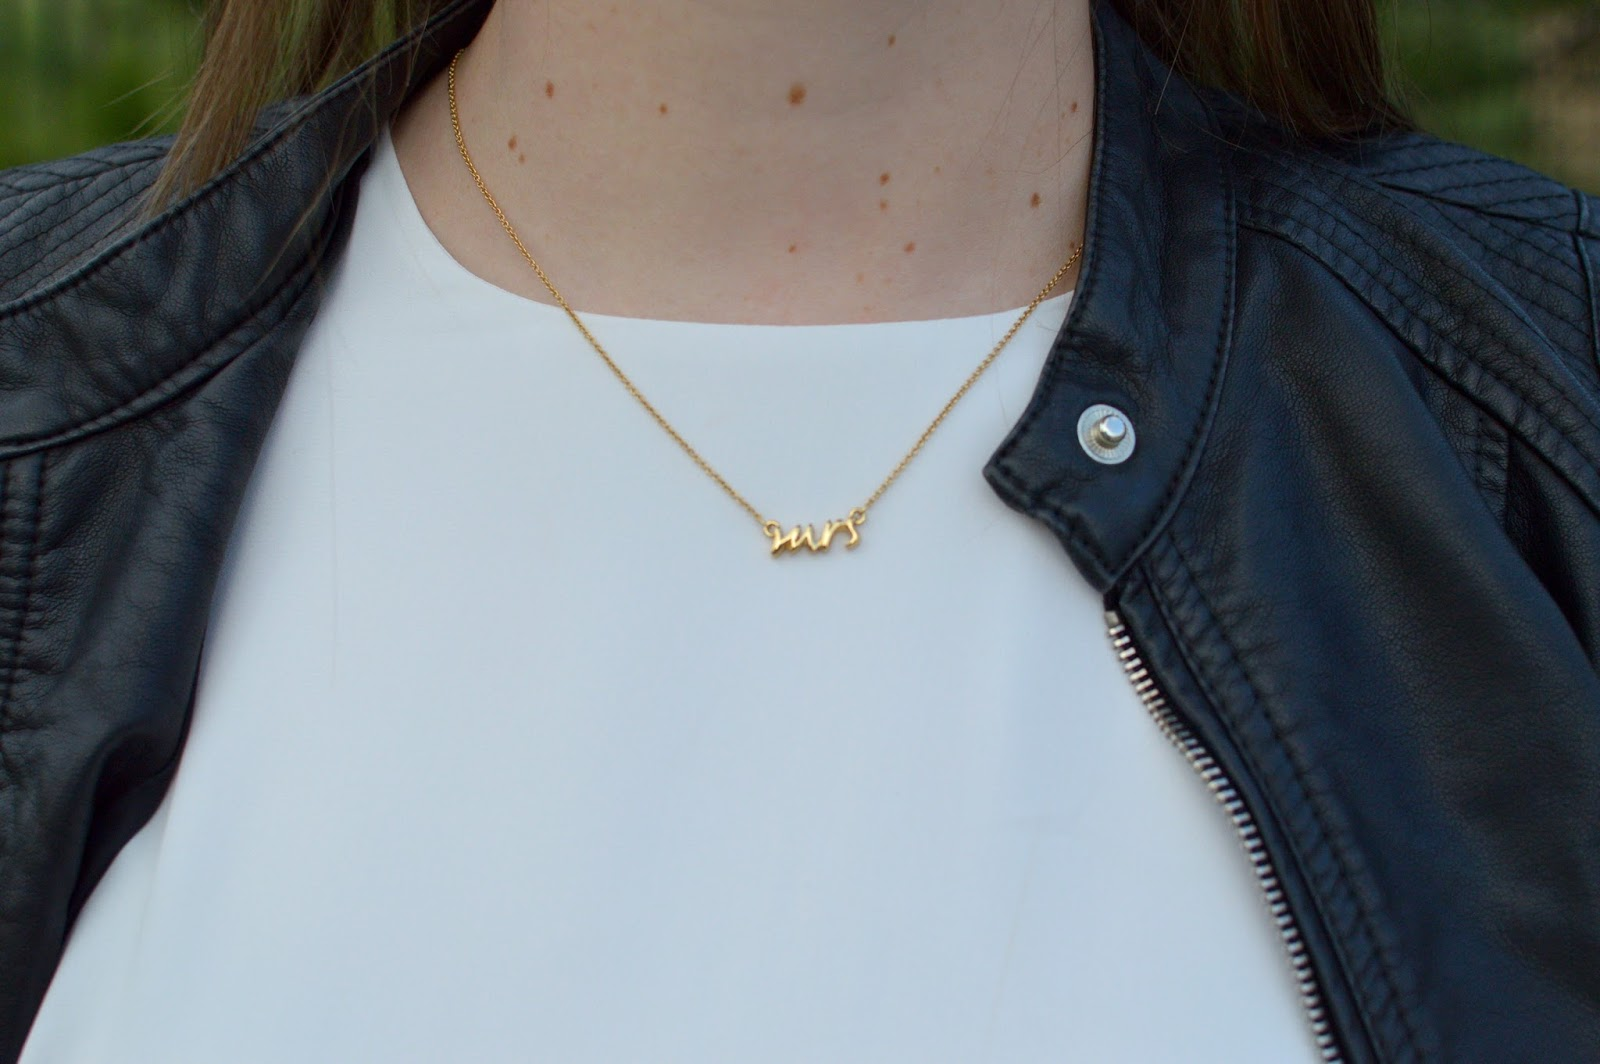 good gifts for the bride to be: kate spade mrs necklace